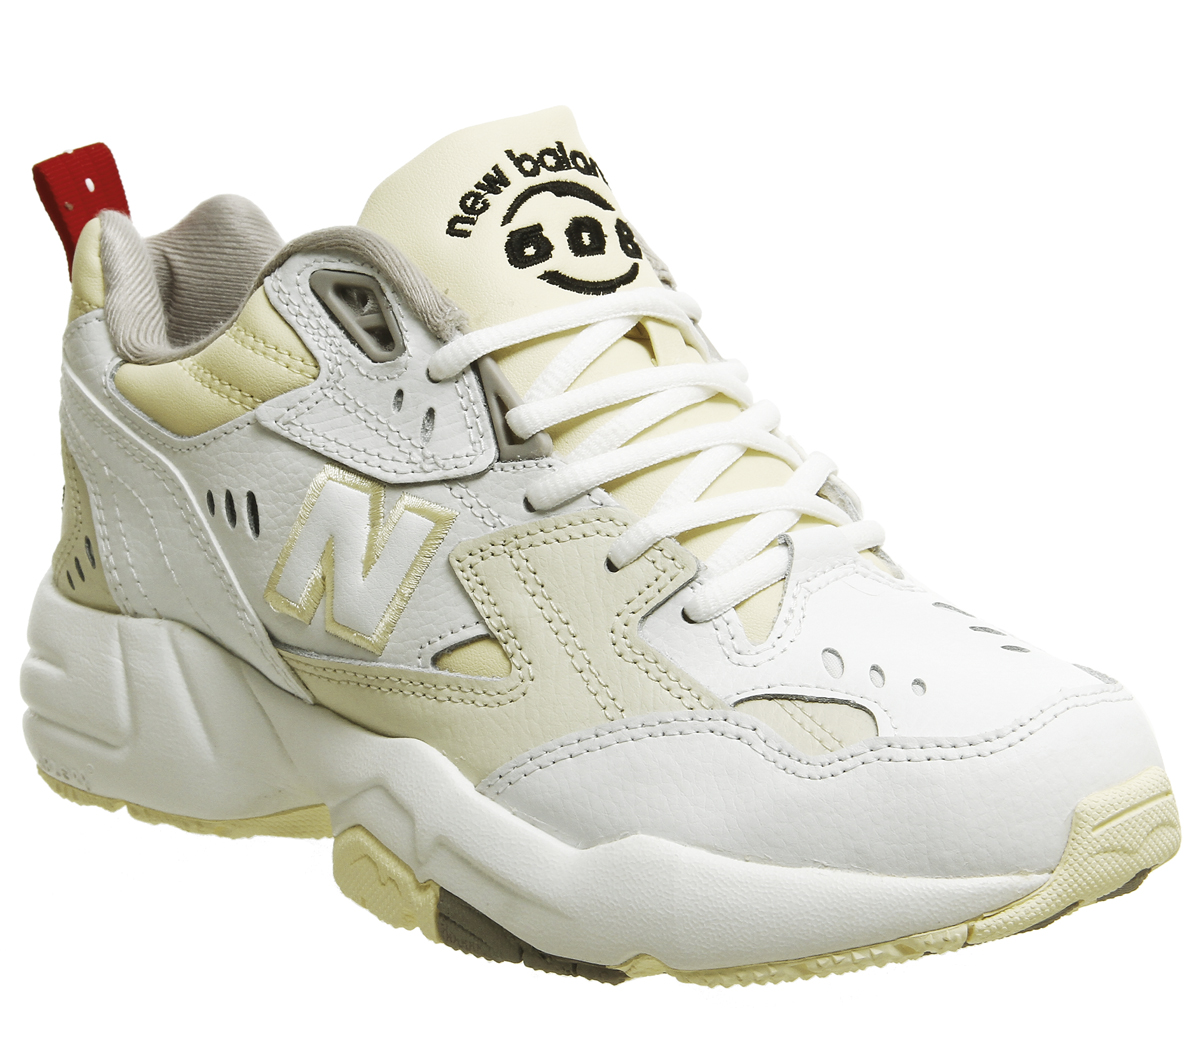 78e53db1327 Details about Womens New Balance 608 Trainers White Cream Trainers Shoes